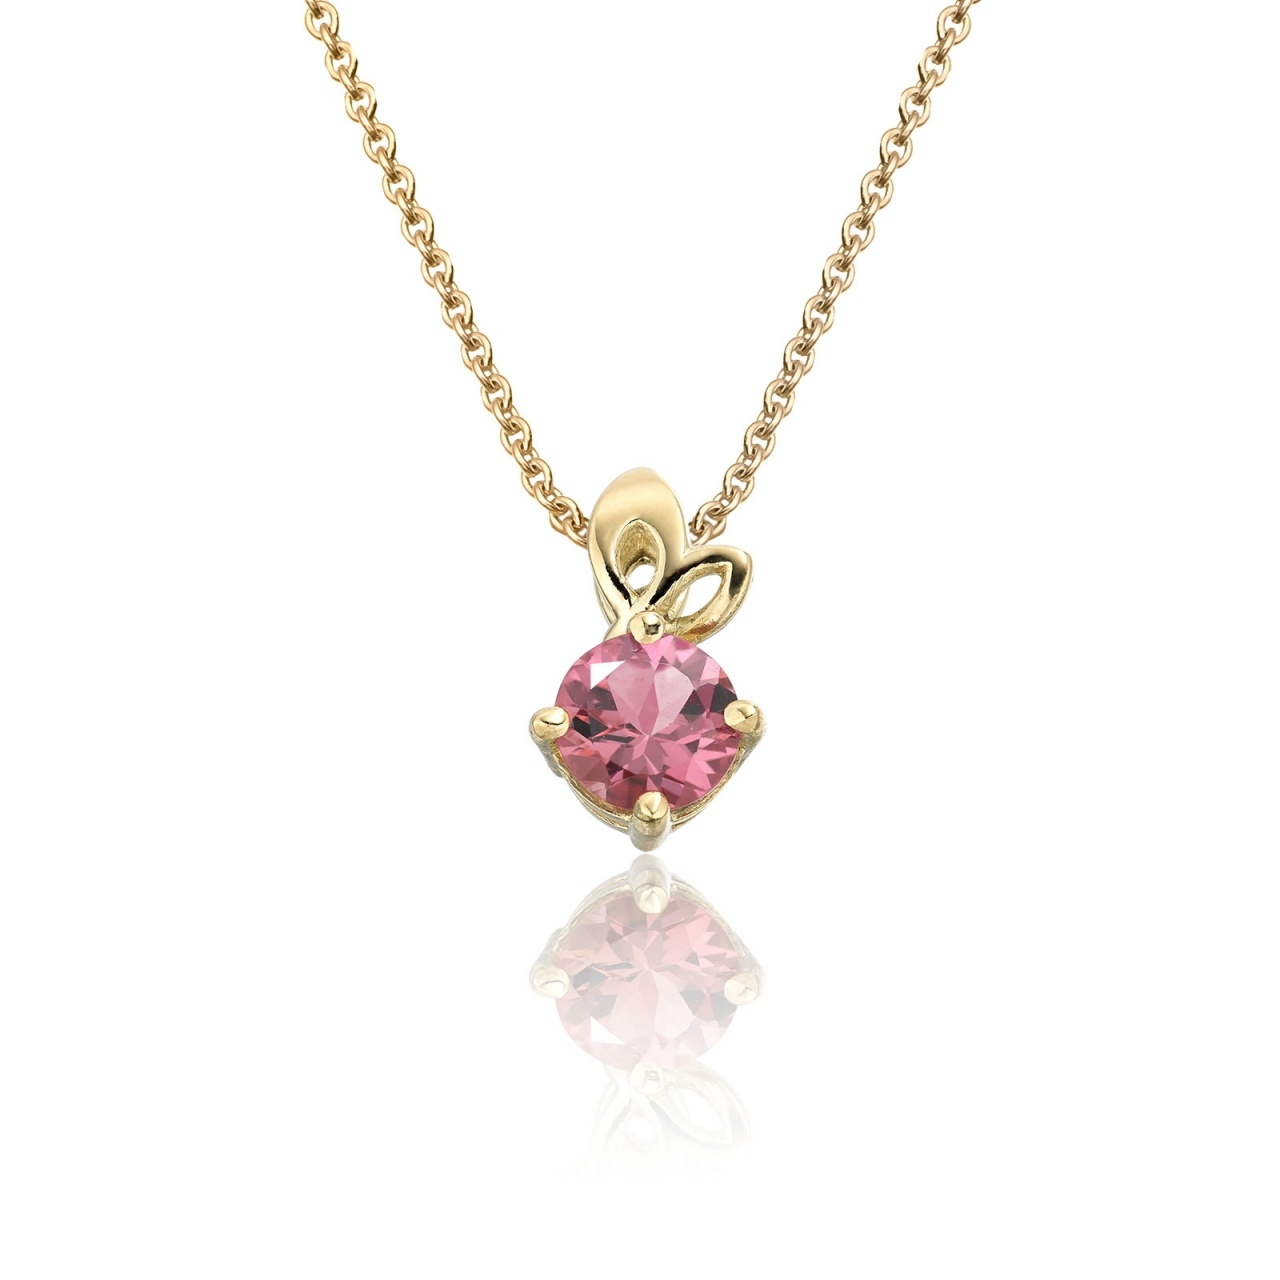 Lief Pink Tourmaline Pendant in Yellow Gold-PEVARYG1175-1